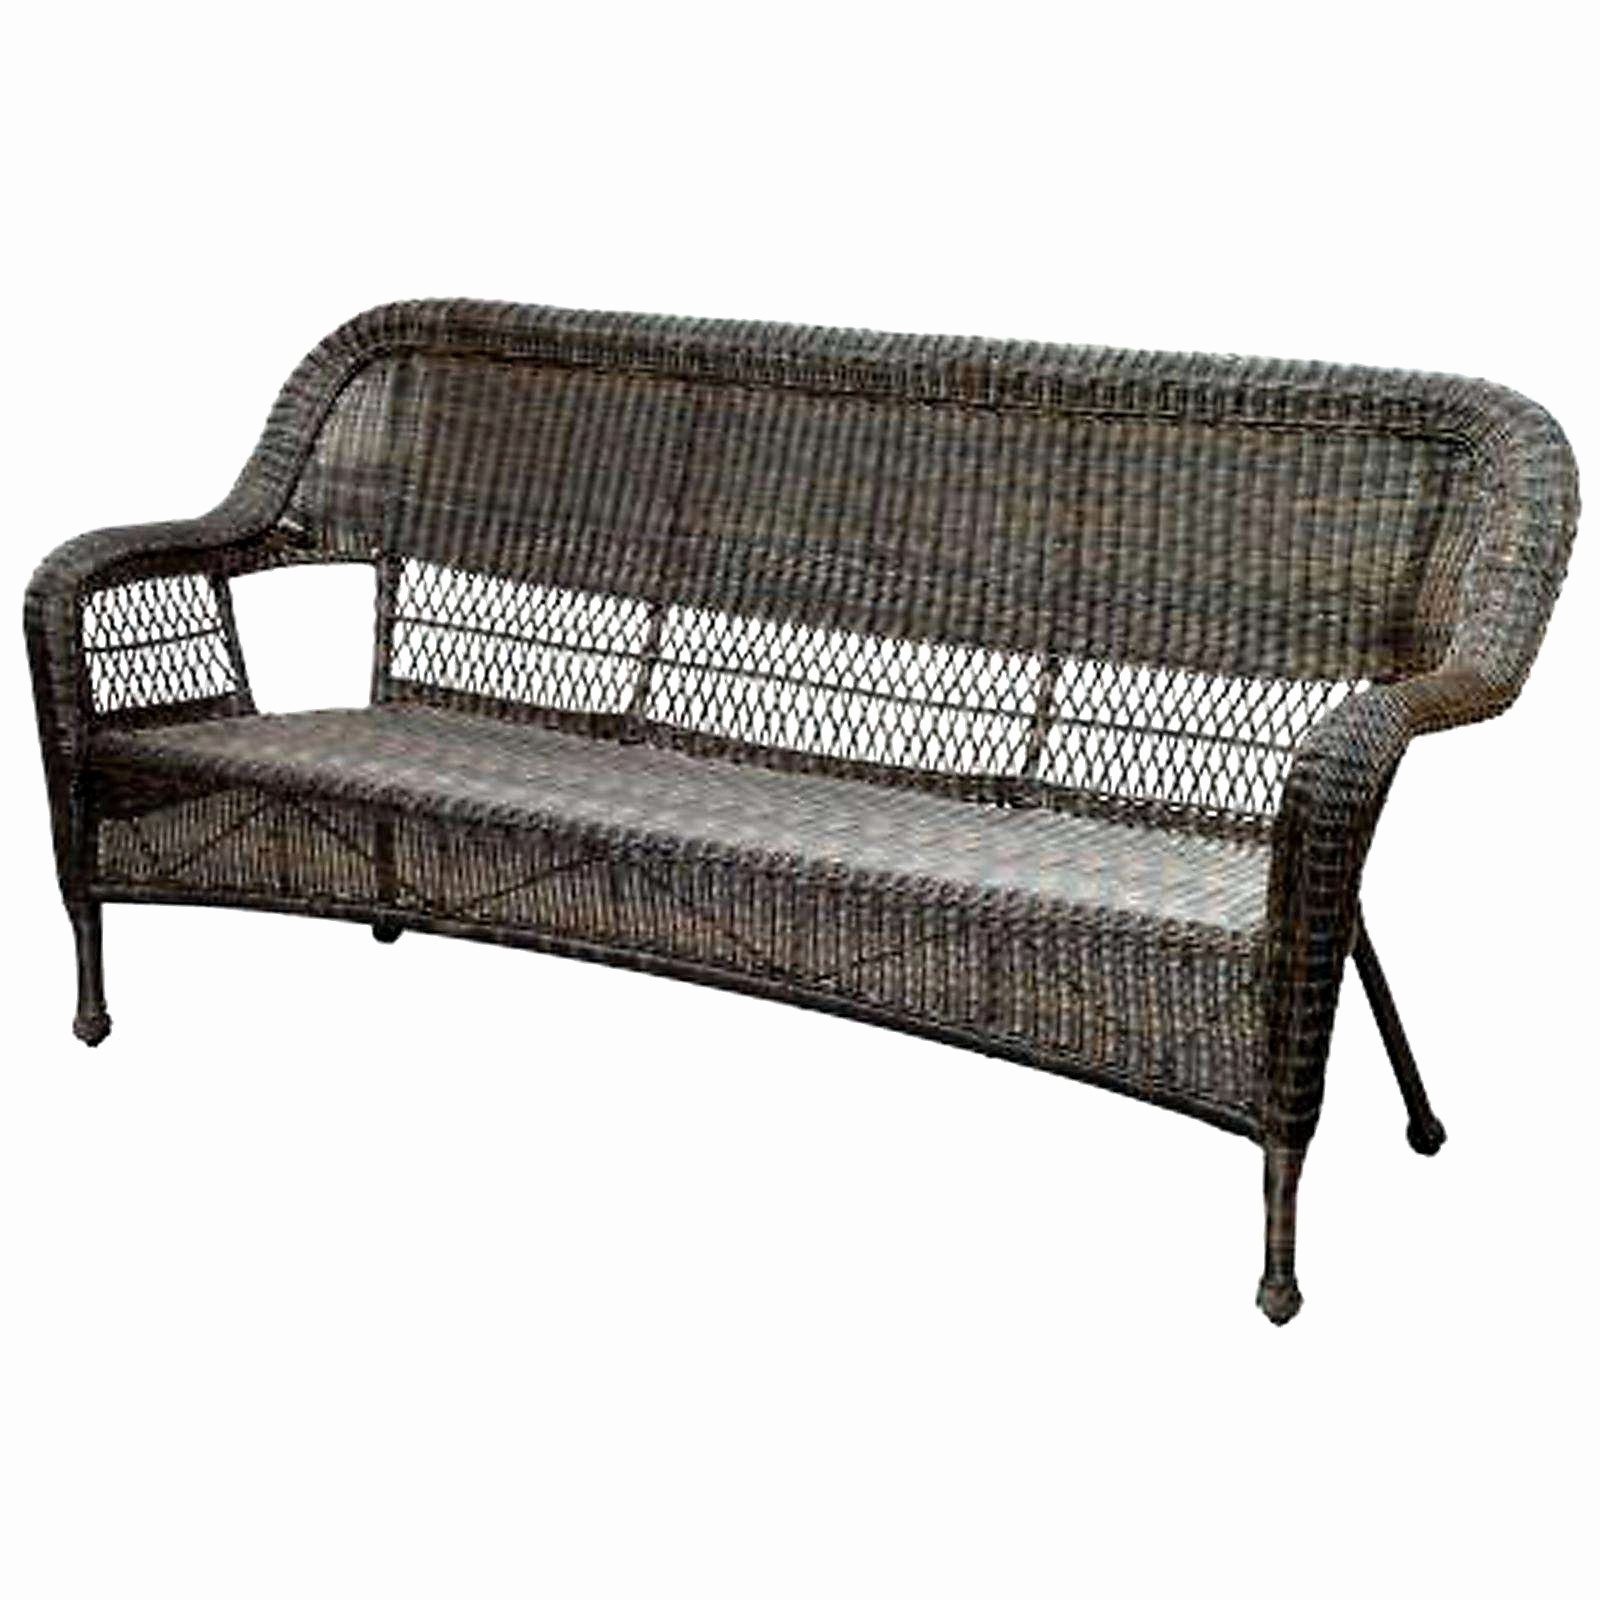 Most Popular Used Patio Rocking Chairs Throughout 40 Beautiful Outdoor Patio Rocking Chair Ideas Of Used Patio (View 15 of 20)